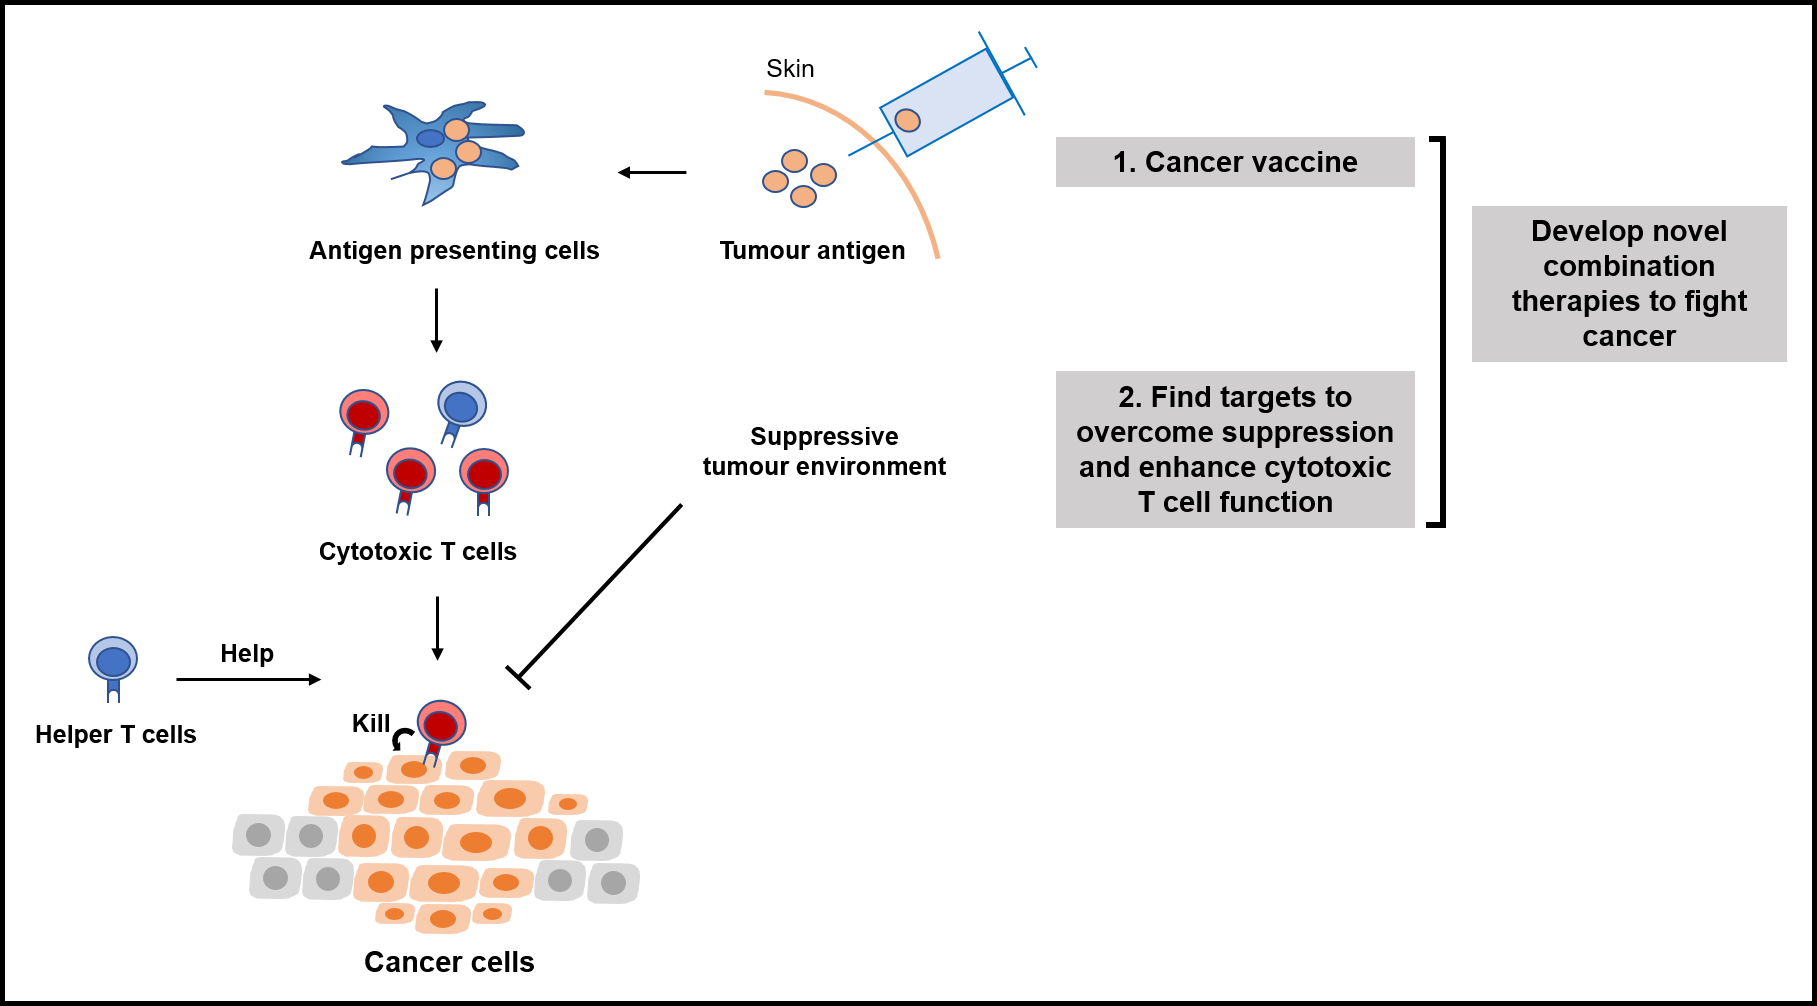 A schematic to illustrate the main research themes in the Van den Eynde lab at Ludwig Oxford. The work aims to increase the efficacy of immunotherapy by developing new combination cancer therapies, essentially along two lines. First, they aim to develop next-generation cancer vaccines that cause tumour antigens to be taken up by antigen-presenting cells to induce strong cytotoxic CD8+ T cell responses against specific tumour antigens, without inducing autoimmunity. Second, they want find targets to overcome the tumour suppressive environment and enhance cytotoxic T cell function.